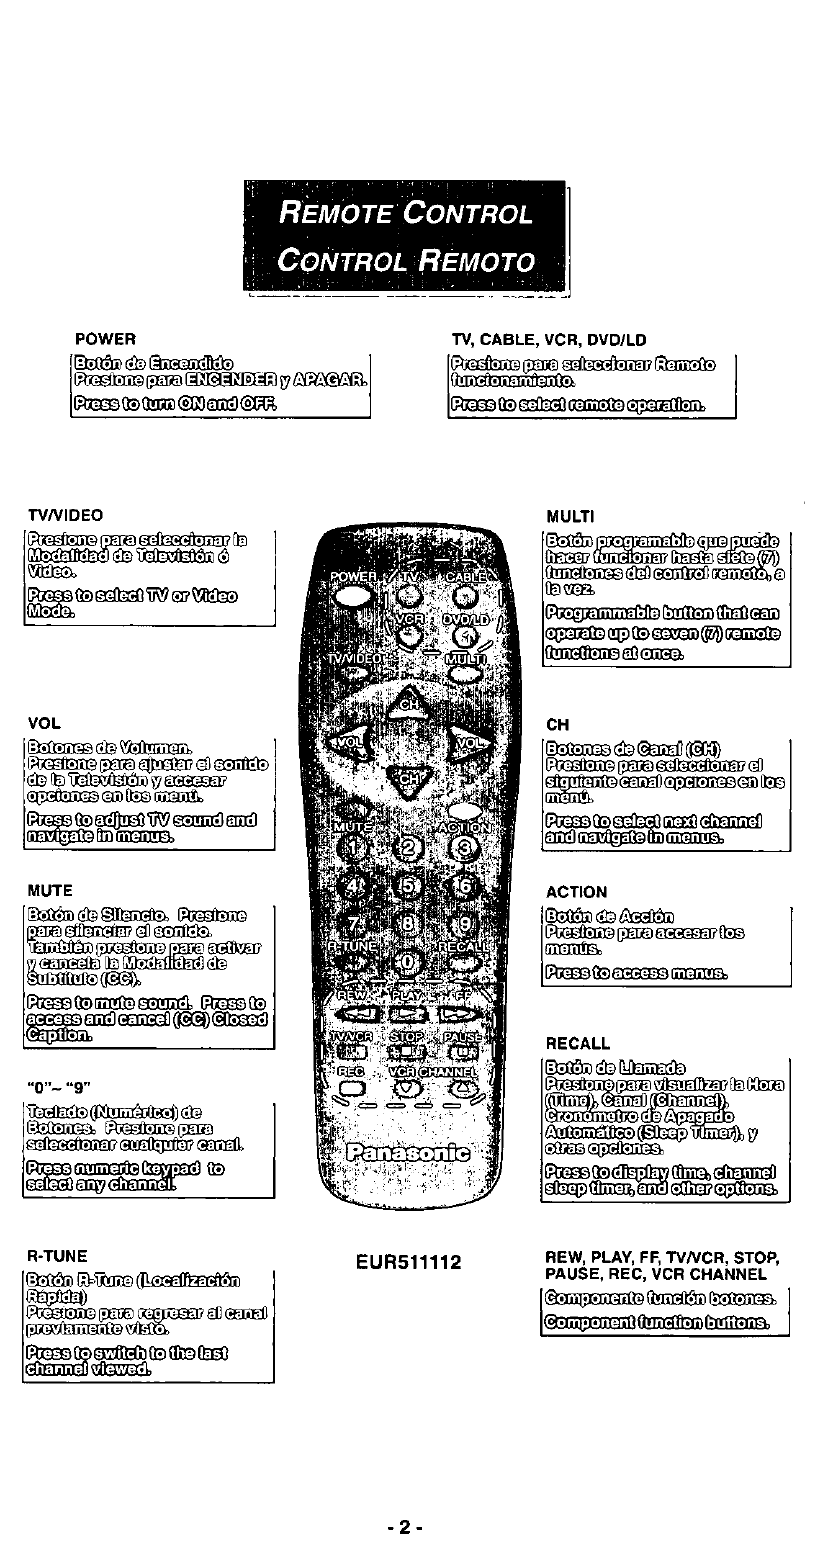 Page 2 of Panasonic Universal Remote EUR511112 User Guide